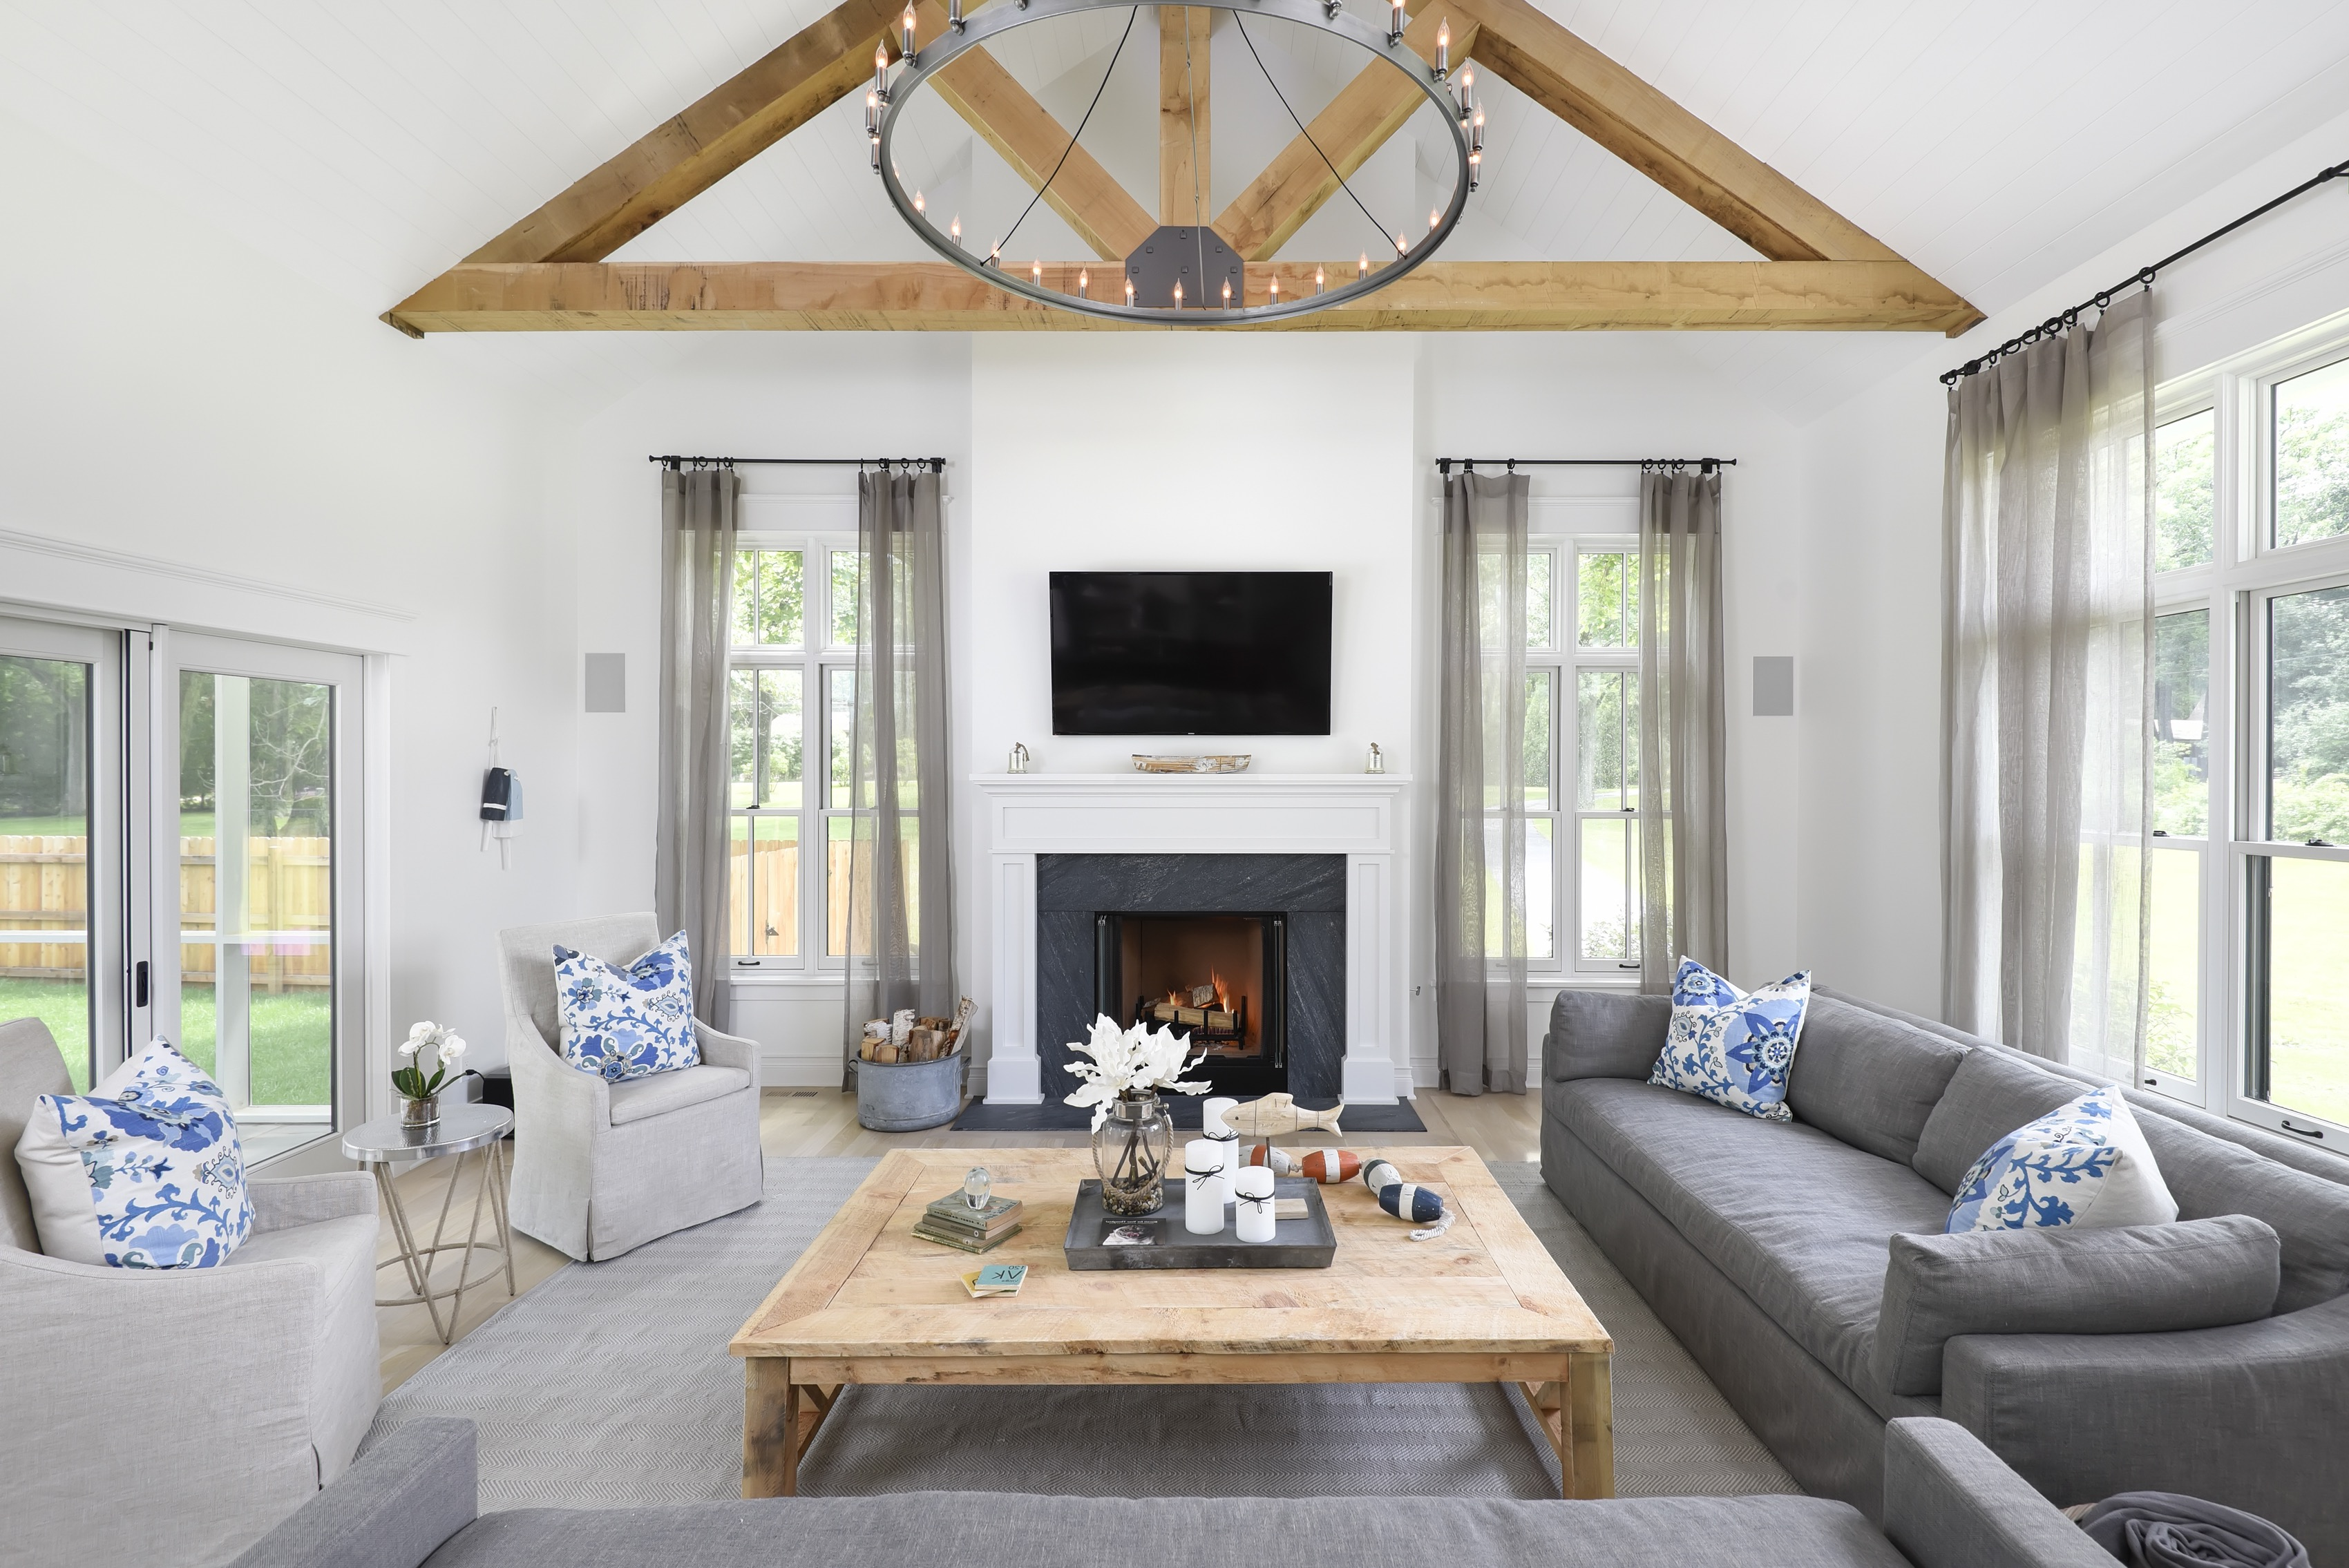 Gray Country Living Room With Exposed Beams (View 15 of 18)